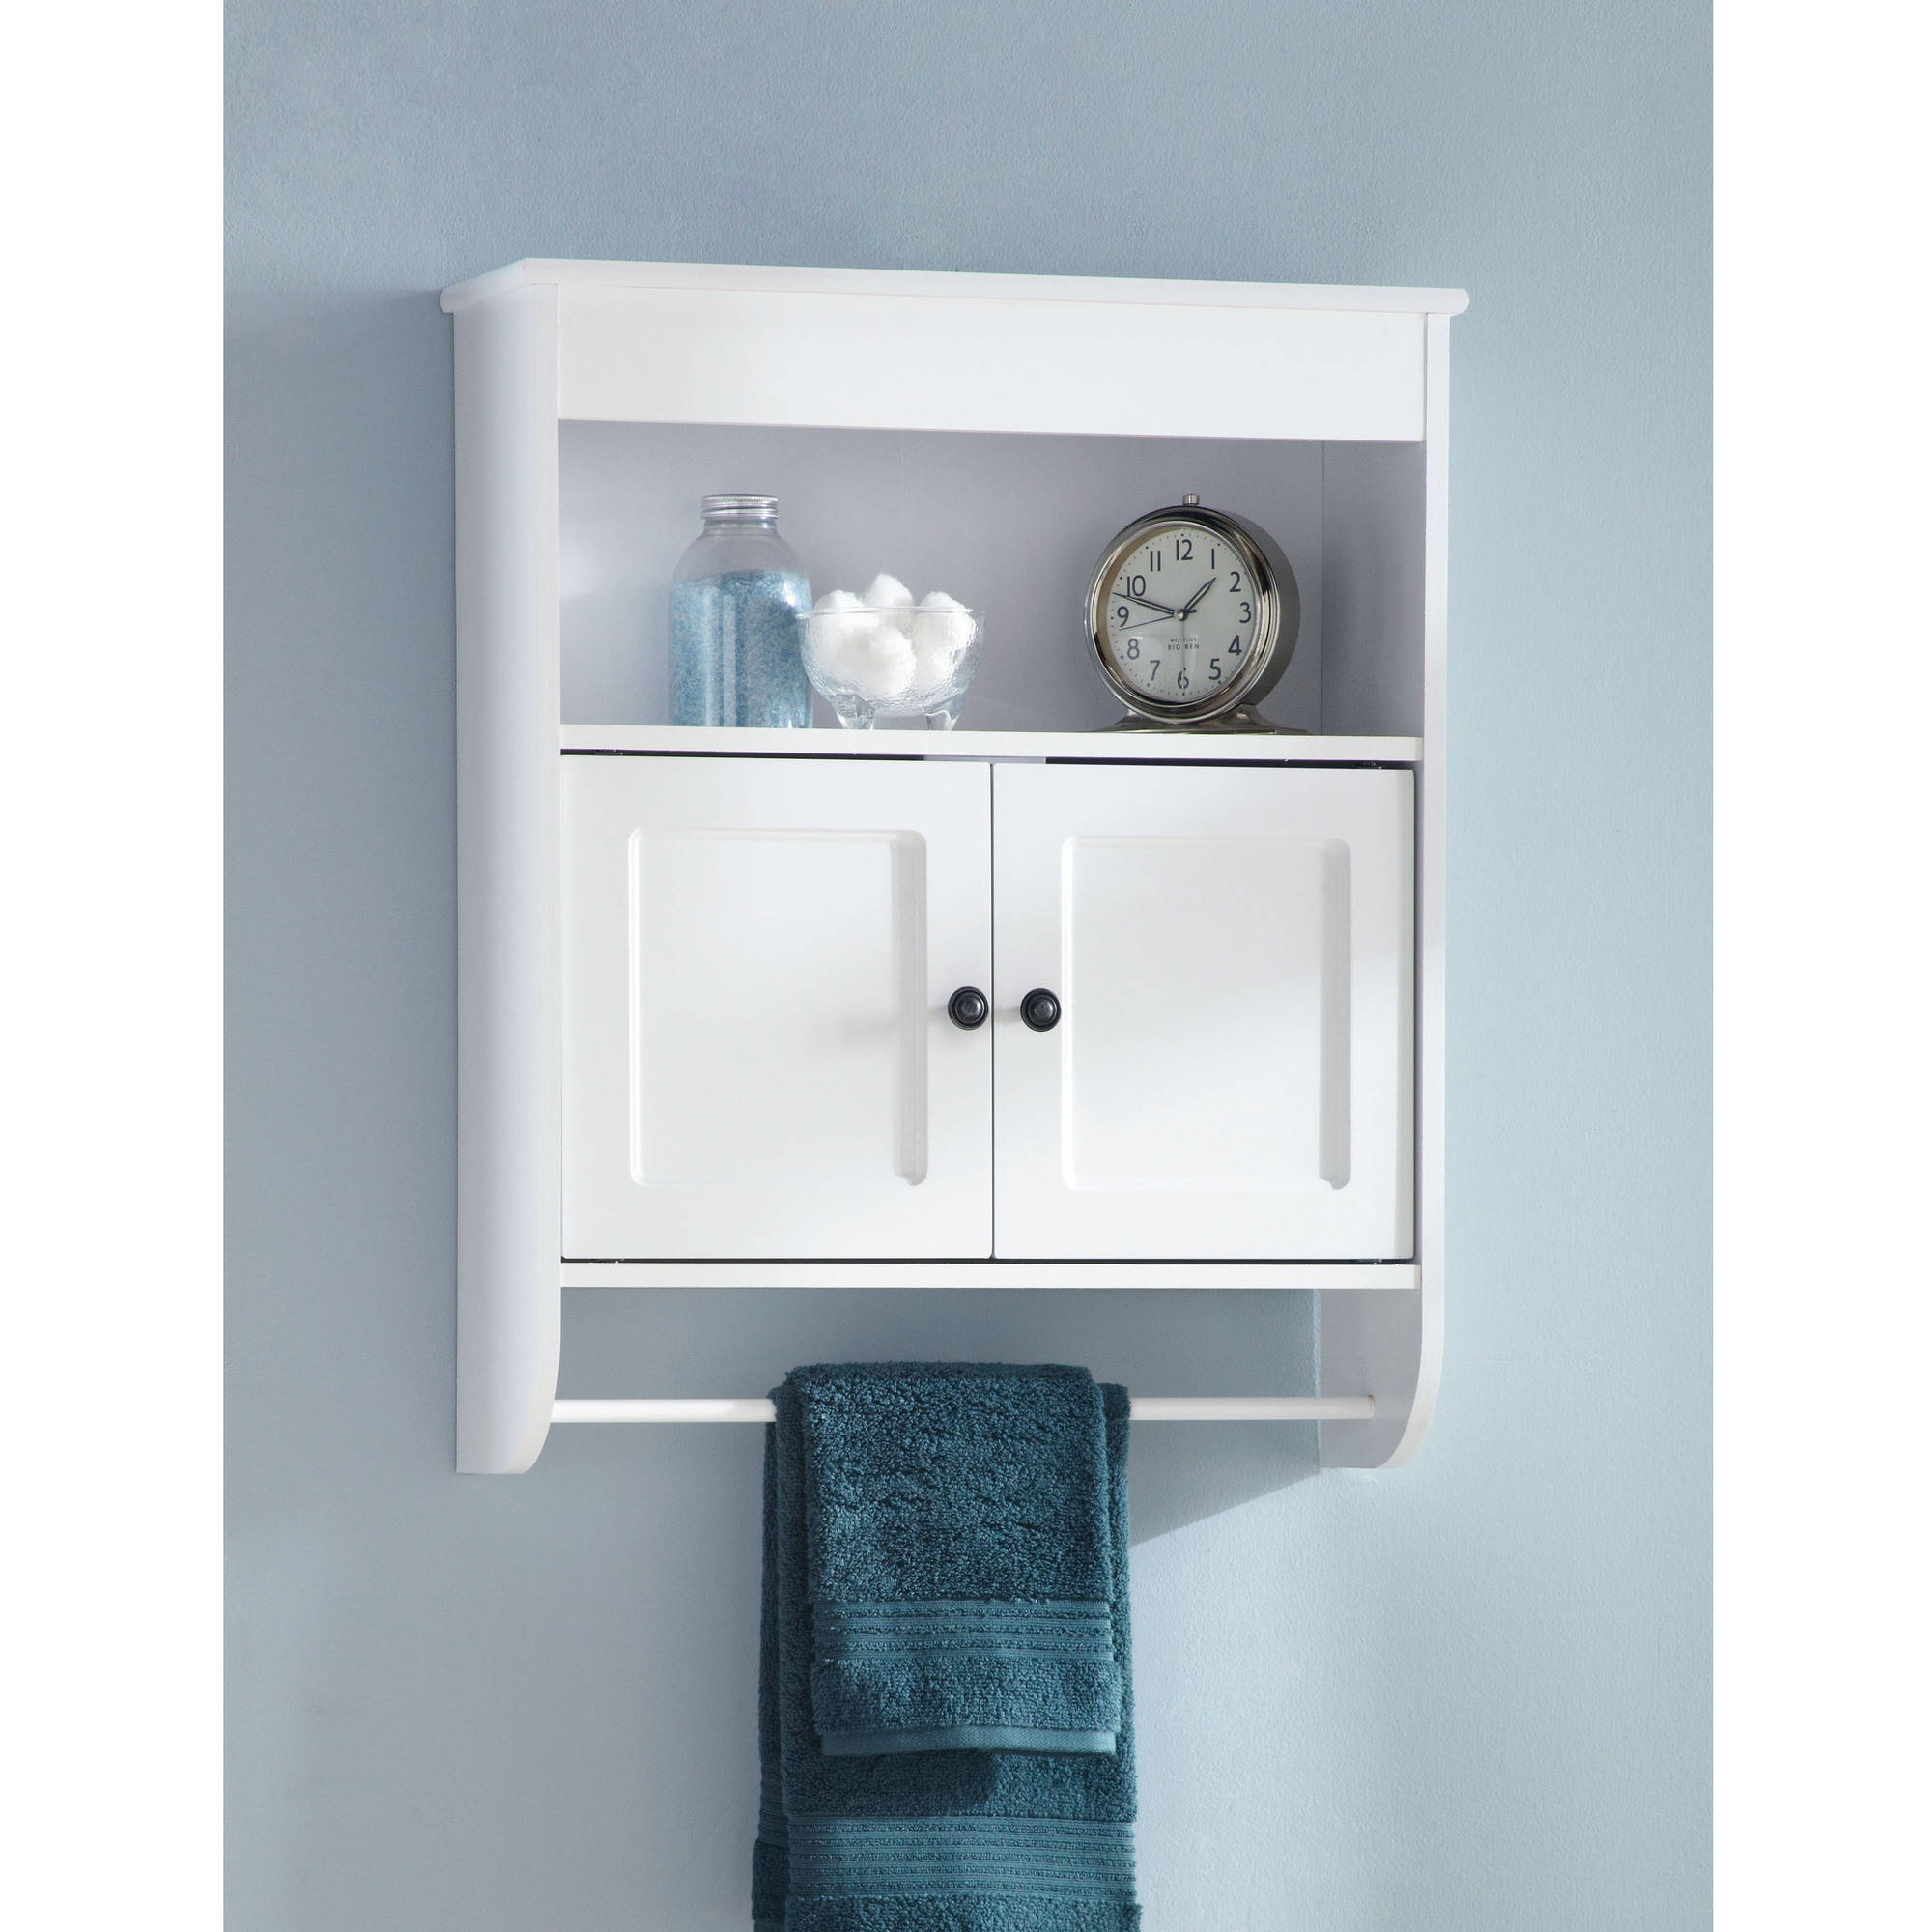 Permalink to Bathroom Wall Cabinets At Walmart